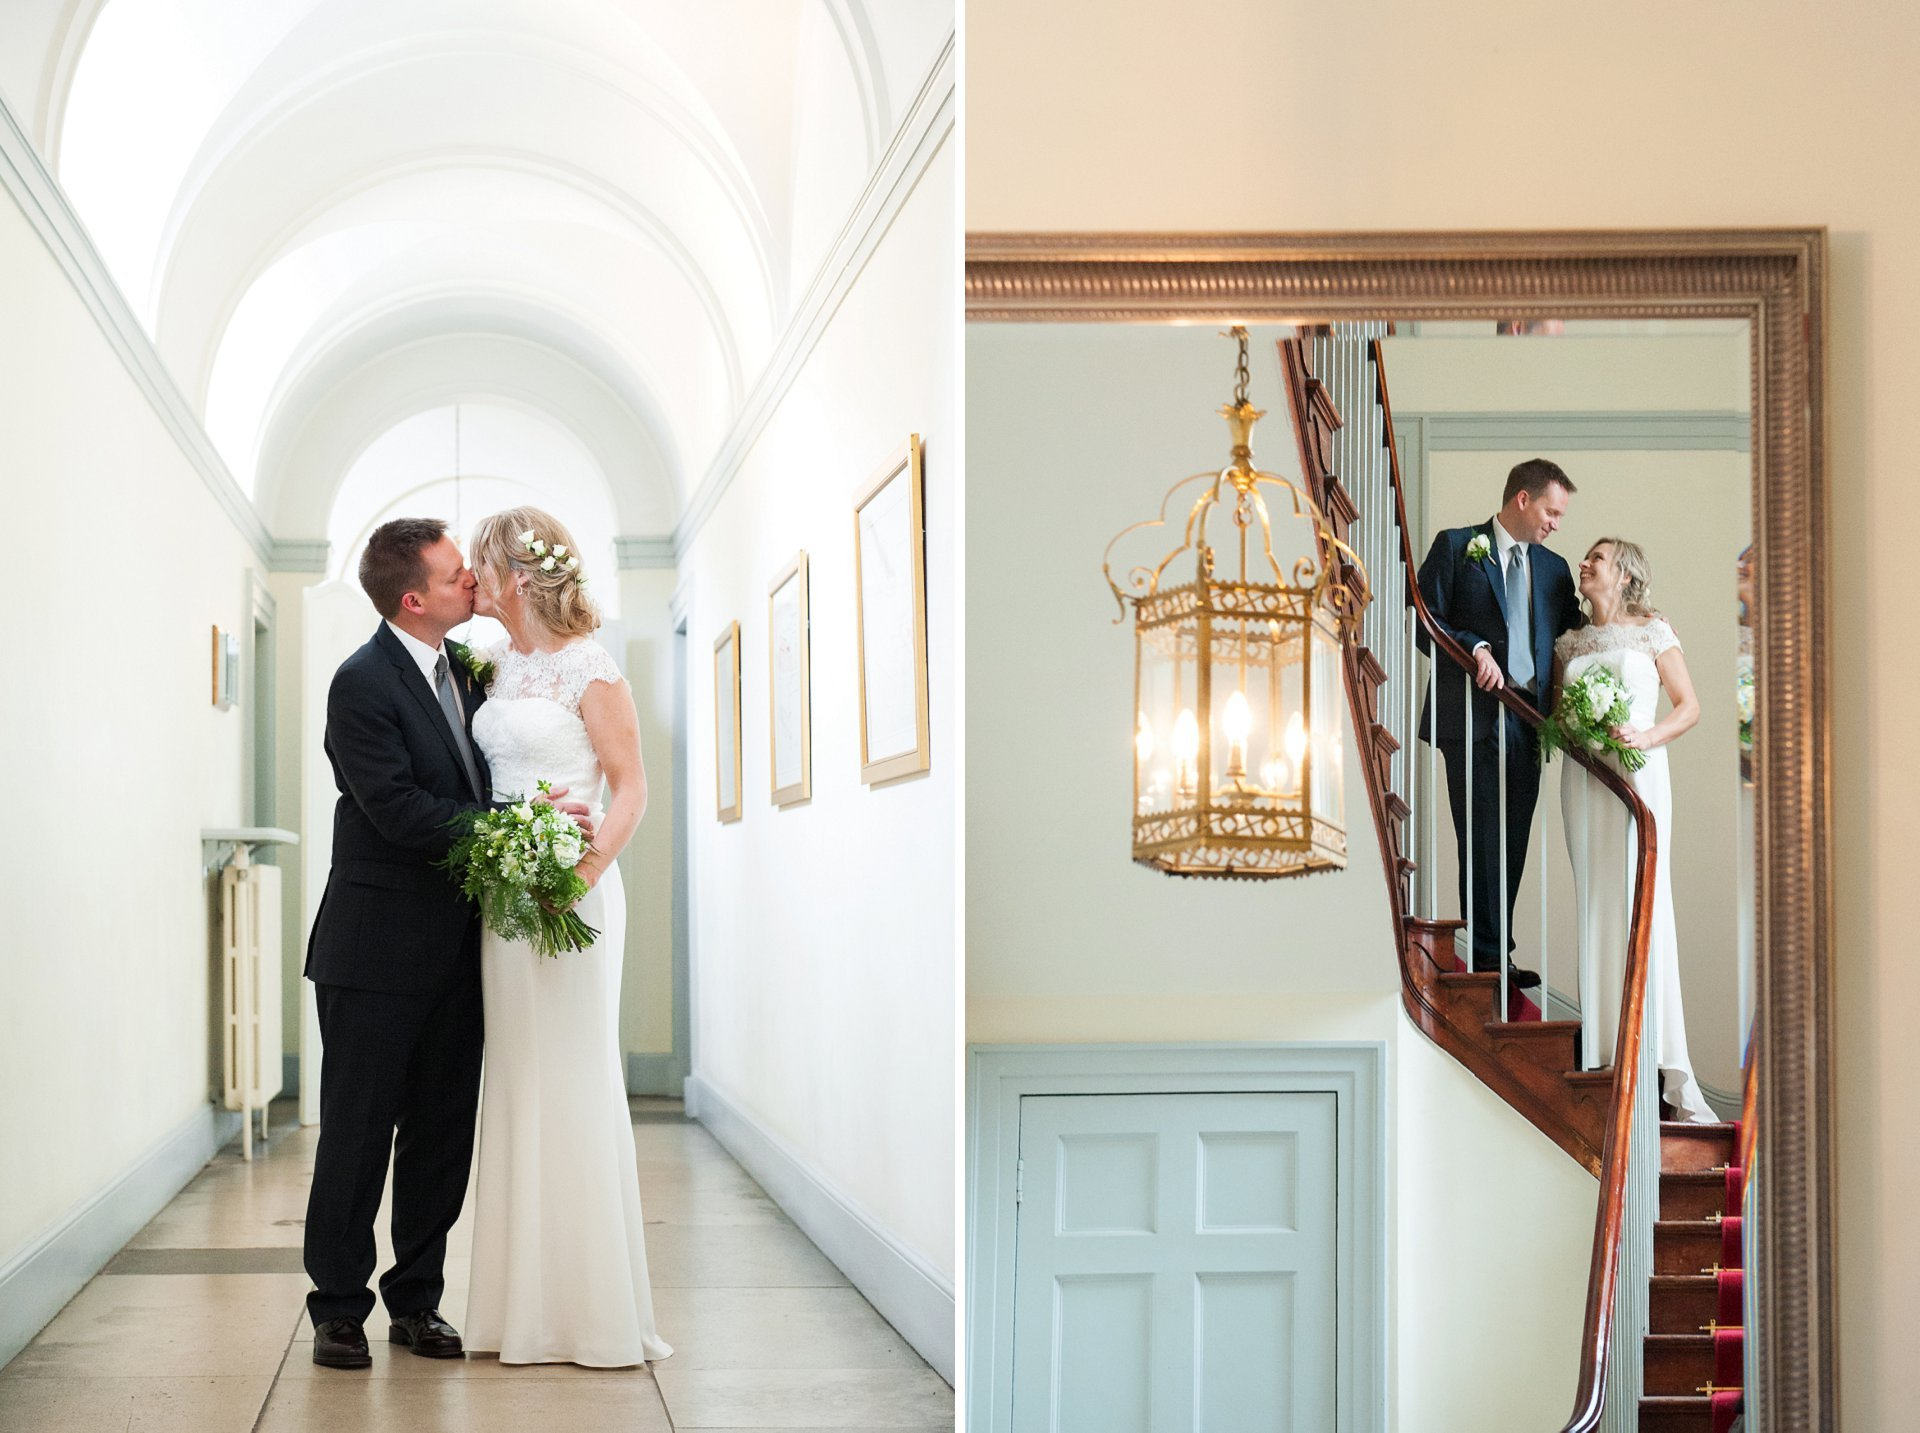 A bride and groom celebrate their Fulham Palace wedding outside the Bishop Terrick's Drawing Room and on hte sweeping red carpeted staircase